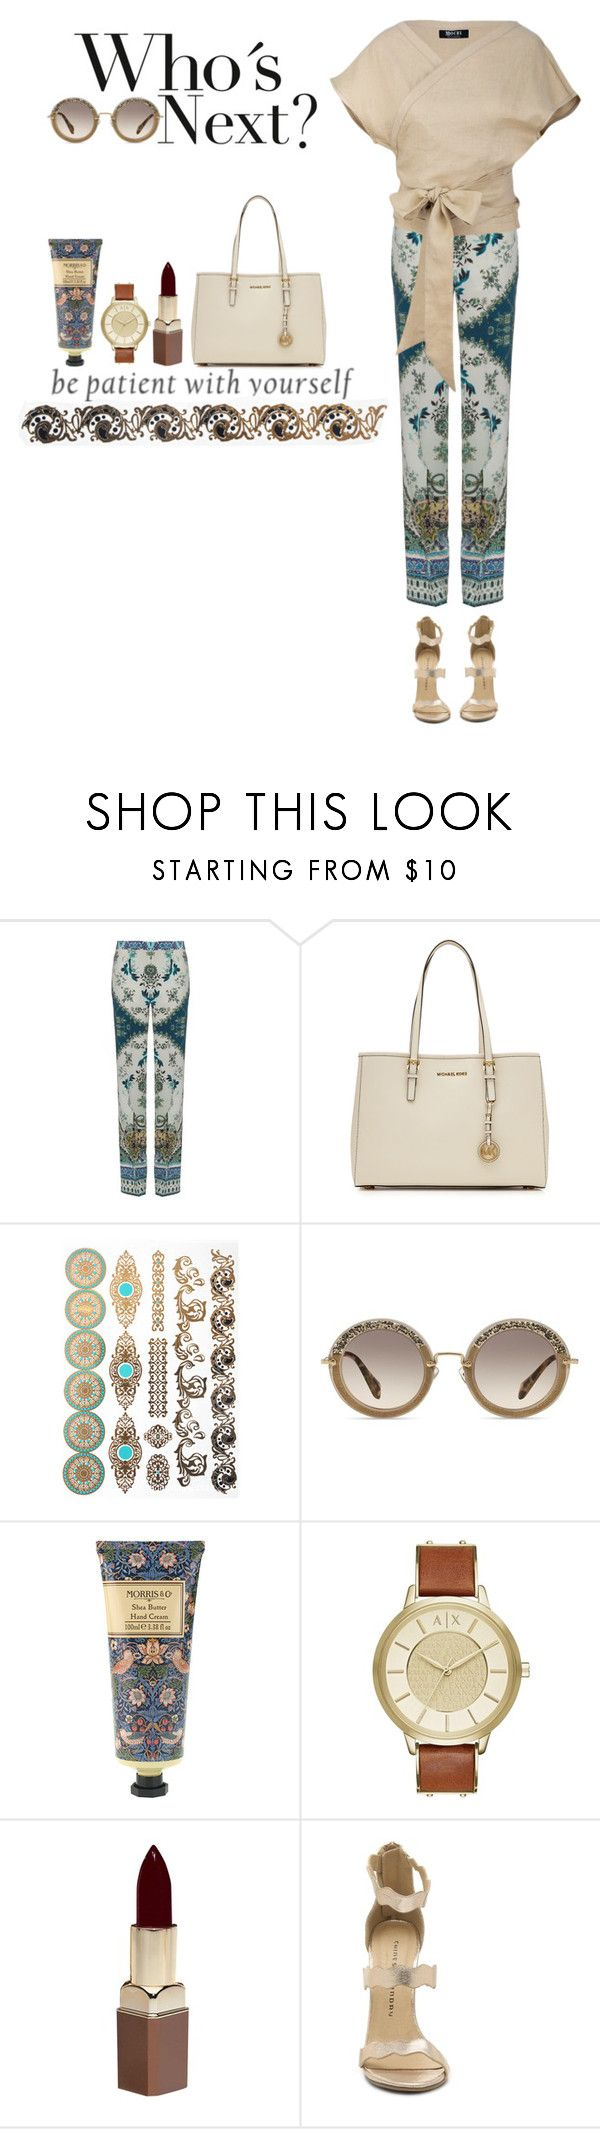 """""""Be patient"""" by fashionvek ❤ liked on Polyvore featuring Etro, MICHAEL Michael Kors, Miu Miu, William Morris, Armani Exchange, Fashion Fair and Mochi"""